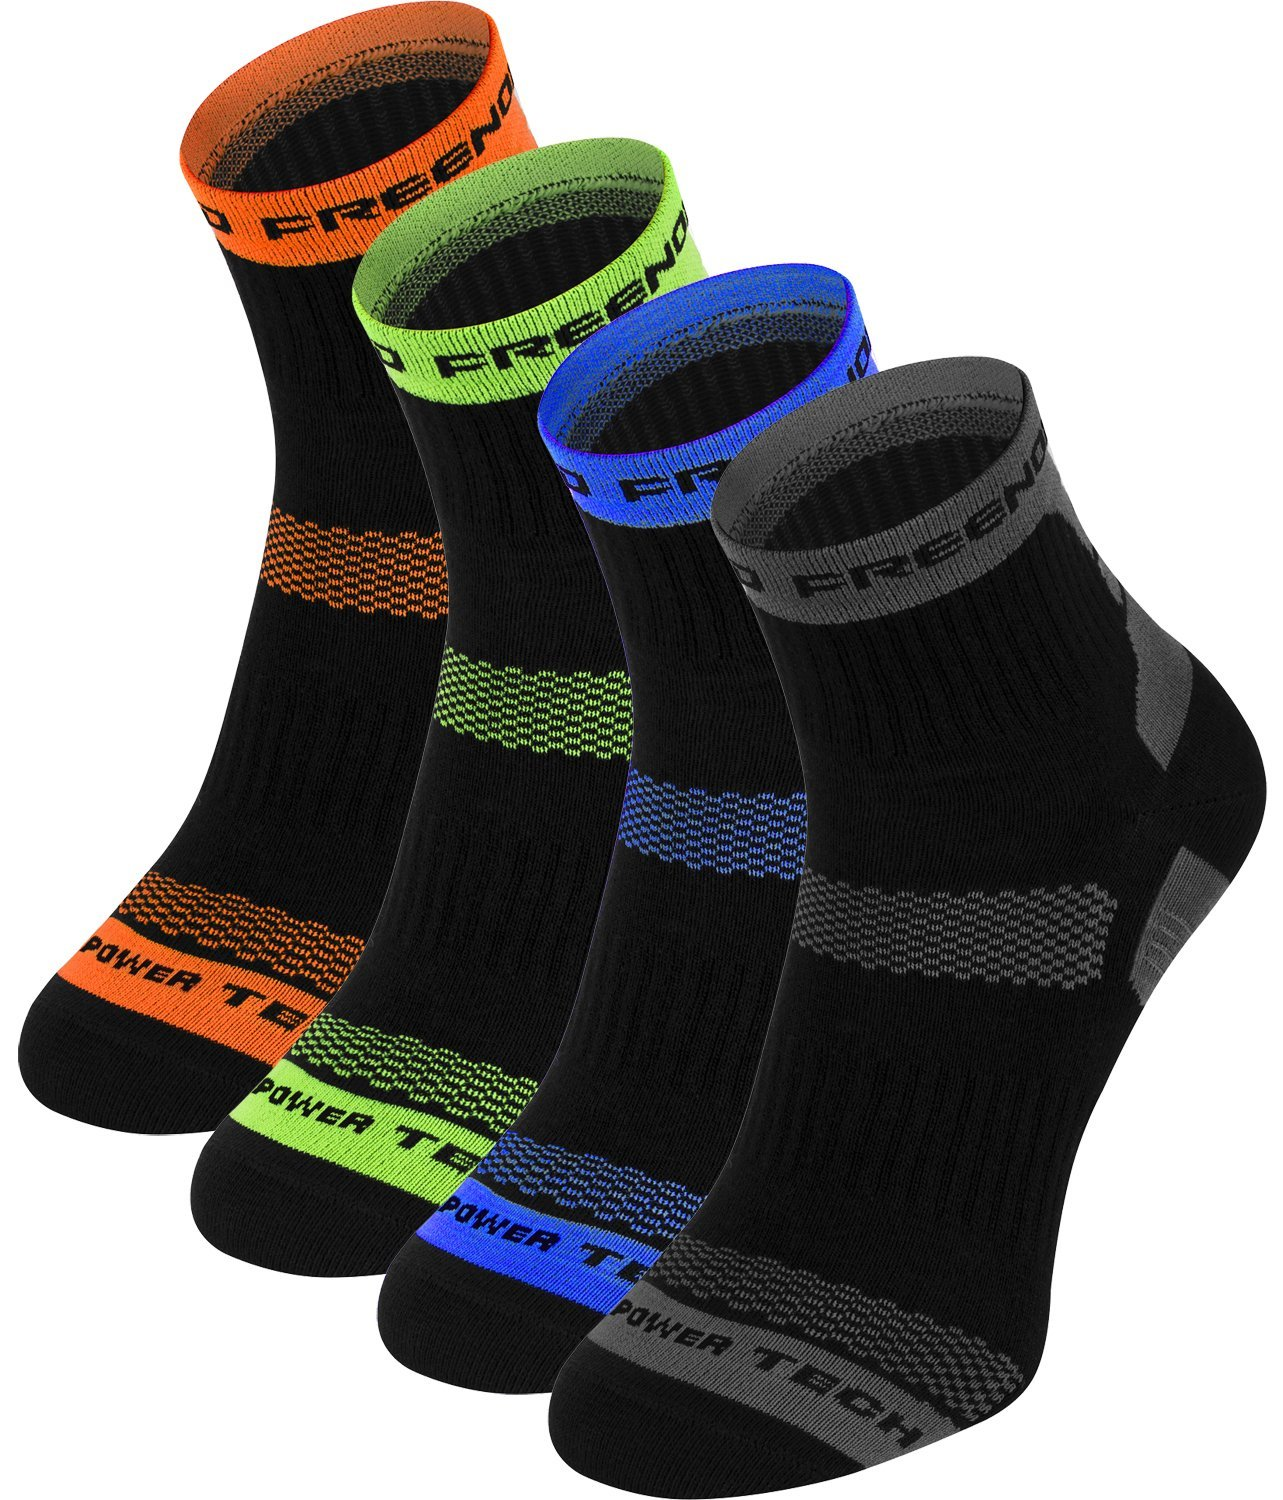 Thermoactive calcetines – 4 pares – Running, ciclismo: Amazon.es ...